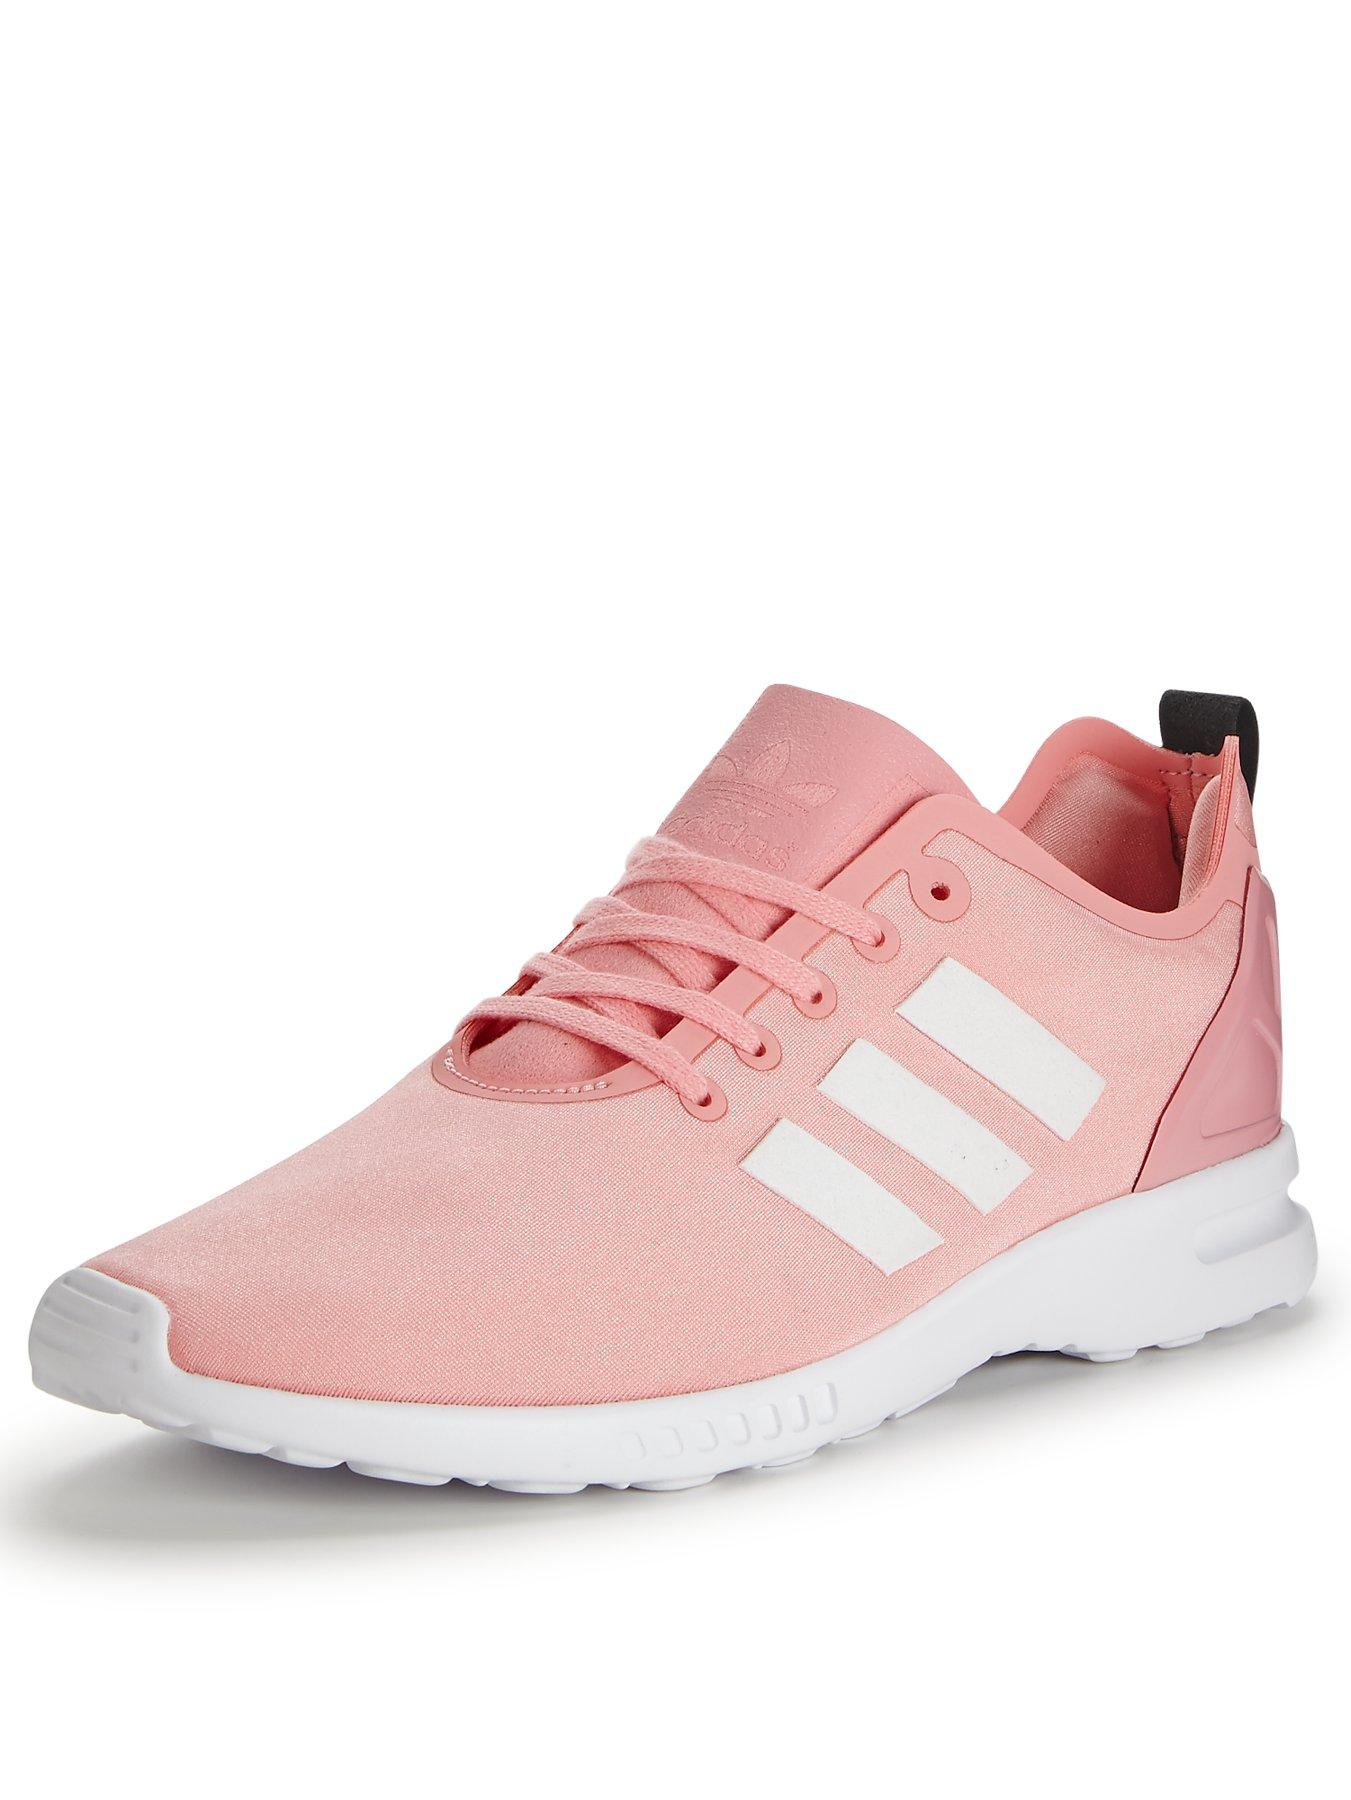 e16c559d7a758 adidas zx 200 womens white Sale